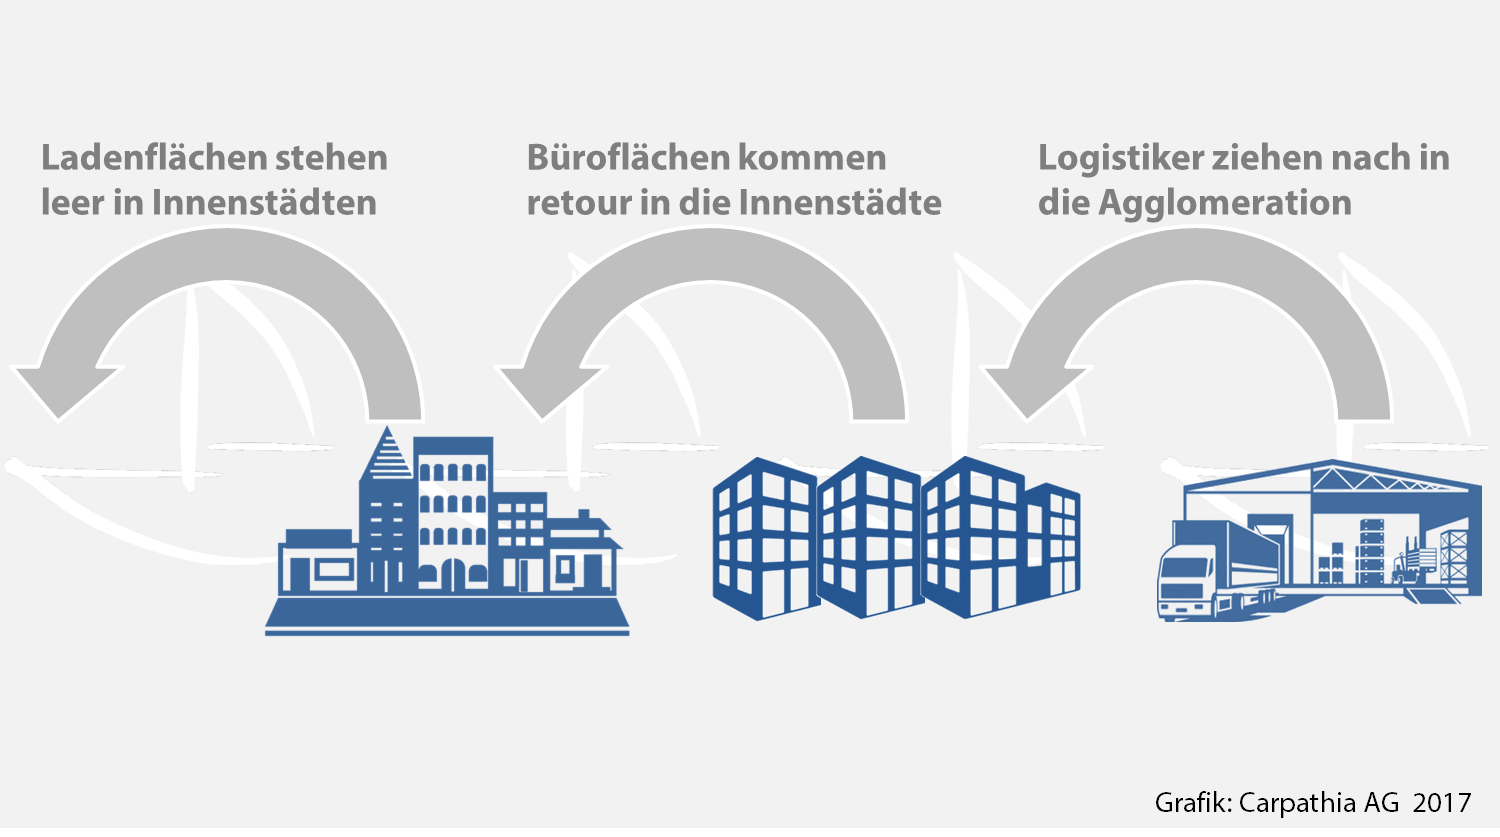 Der Store-Office-Logistics-Shift - Grafik: Carpathia AG 2017